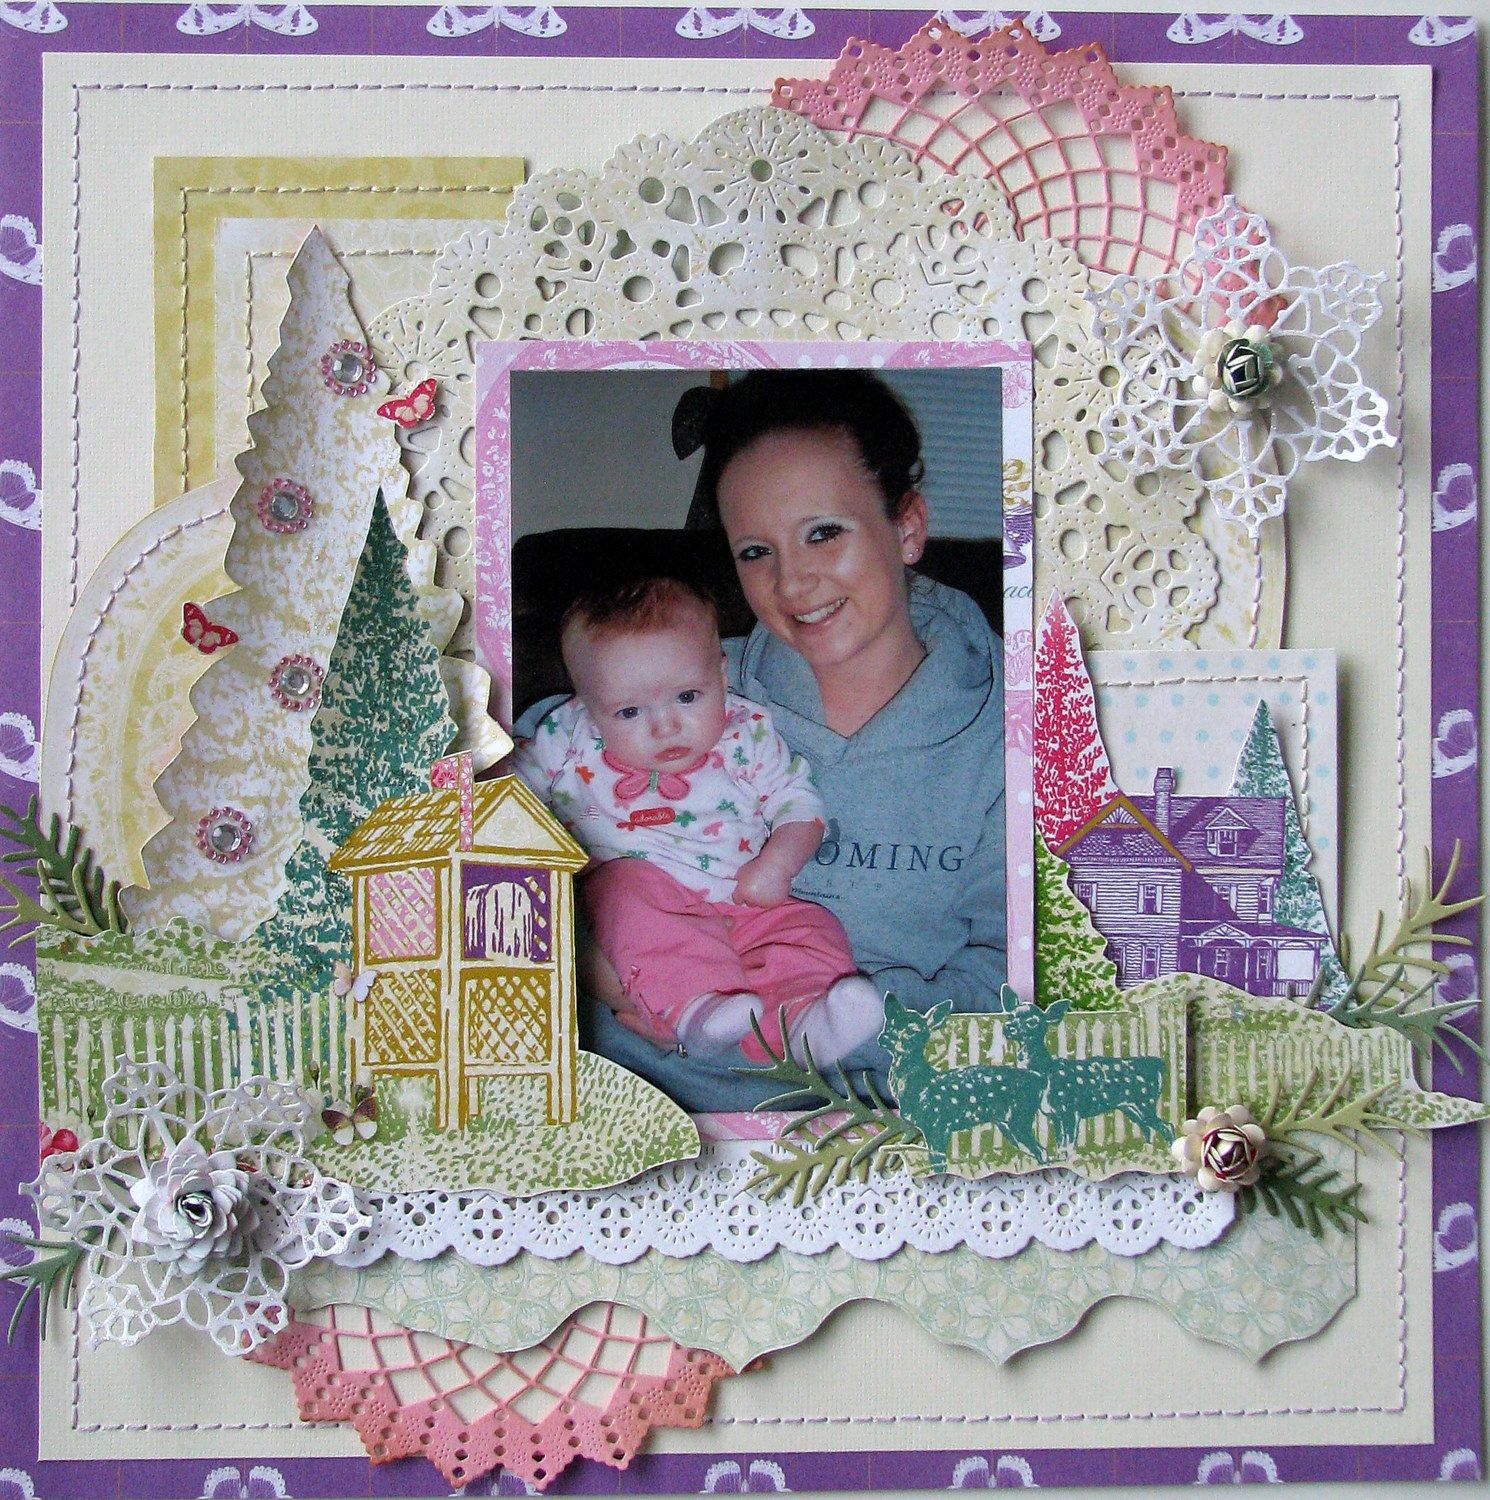 Winter Wonderland - Scrapbook.com...how nice we girls need to do this together ...Can't wait...